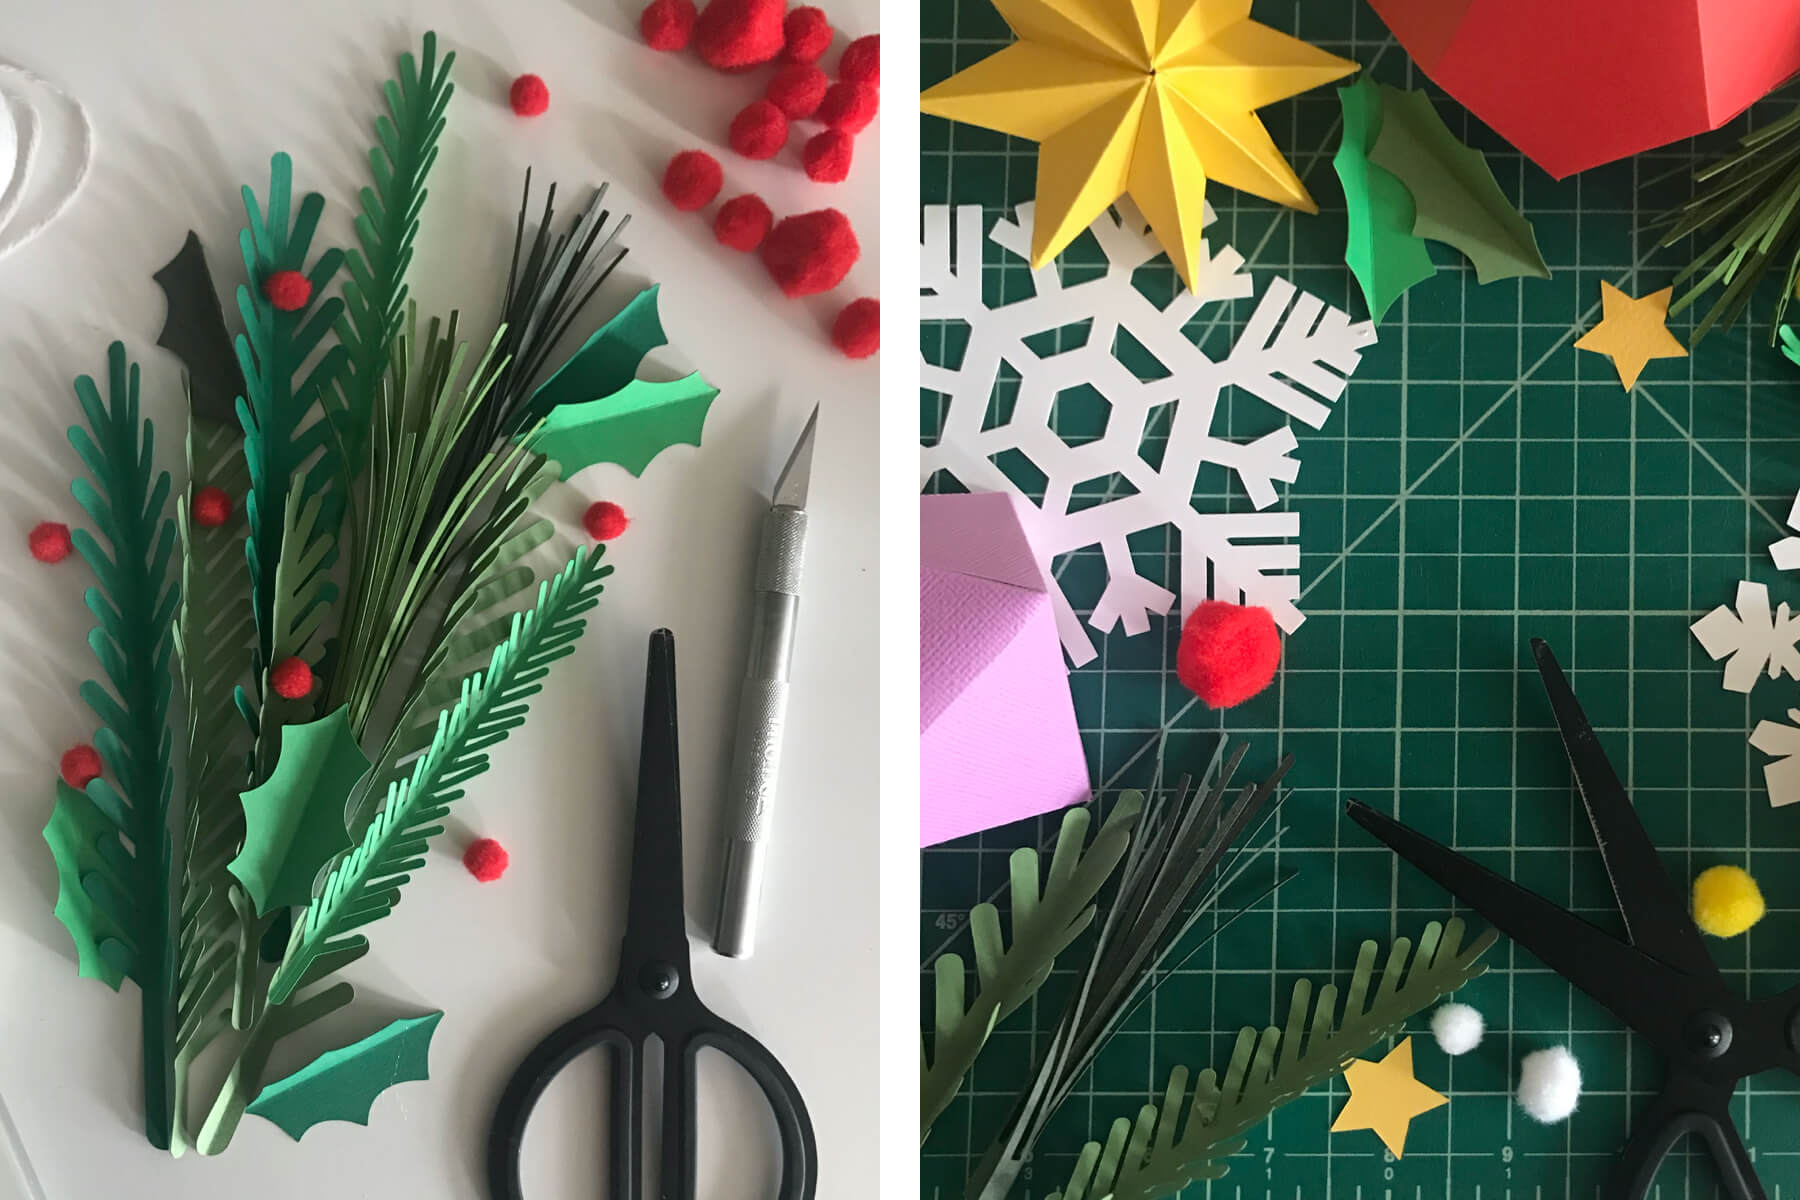 Cut paper snowflakes and stars